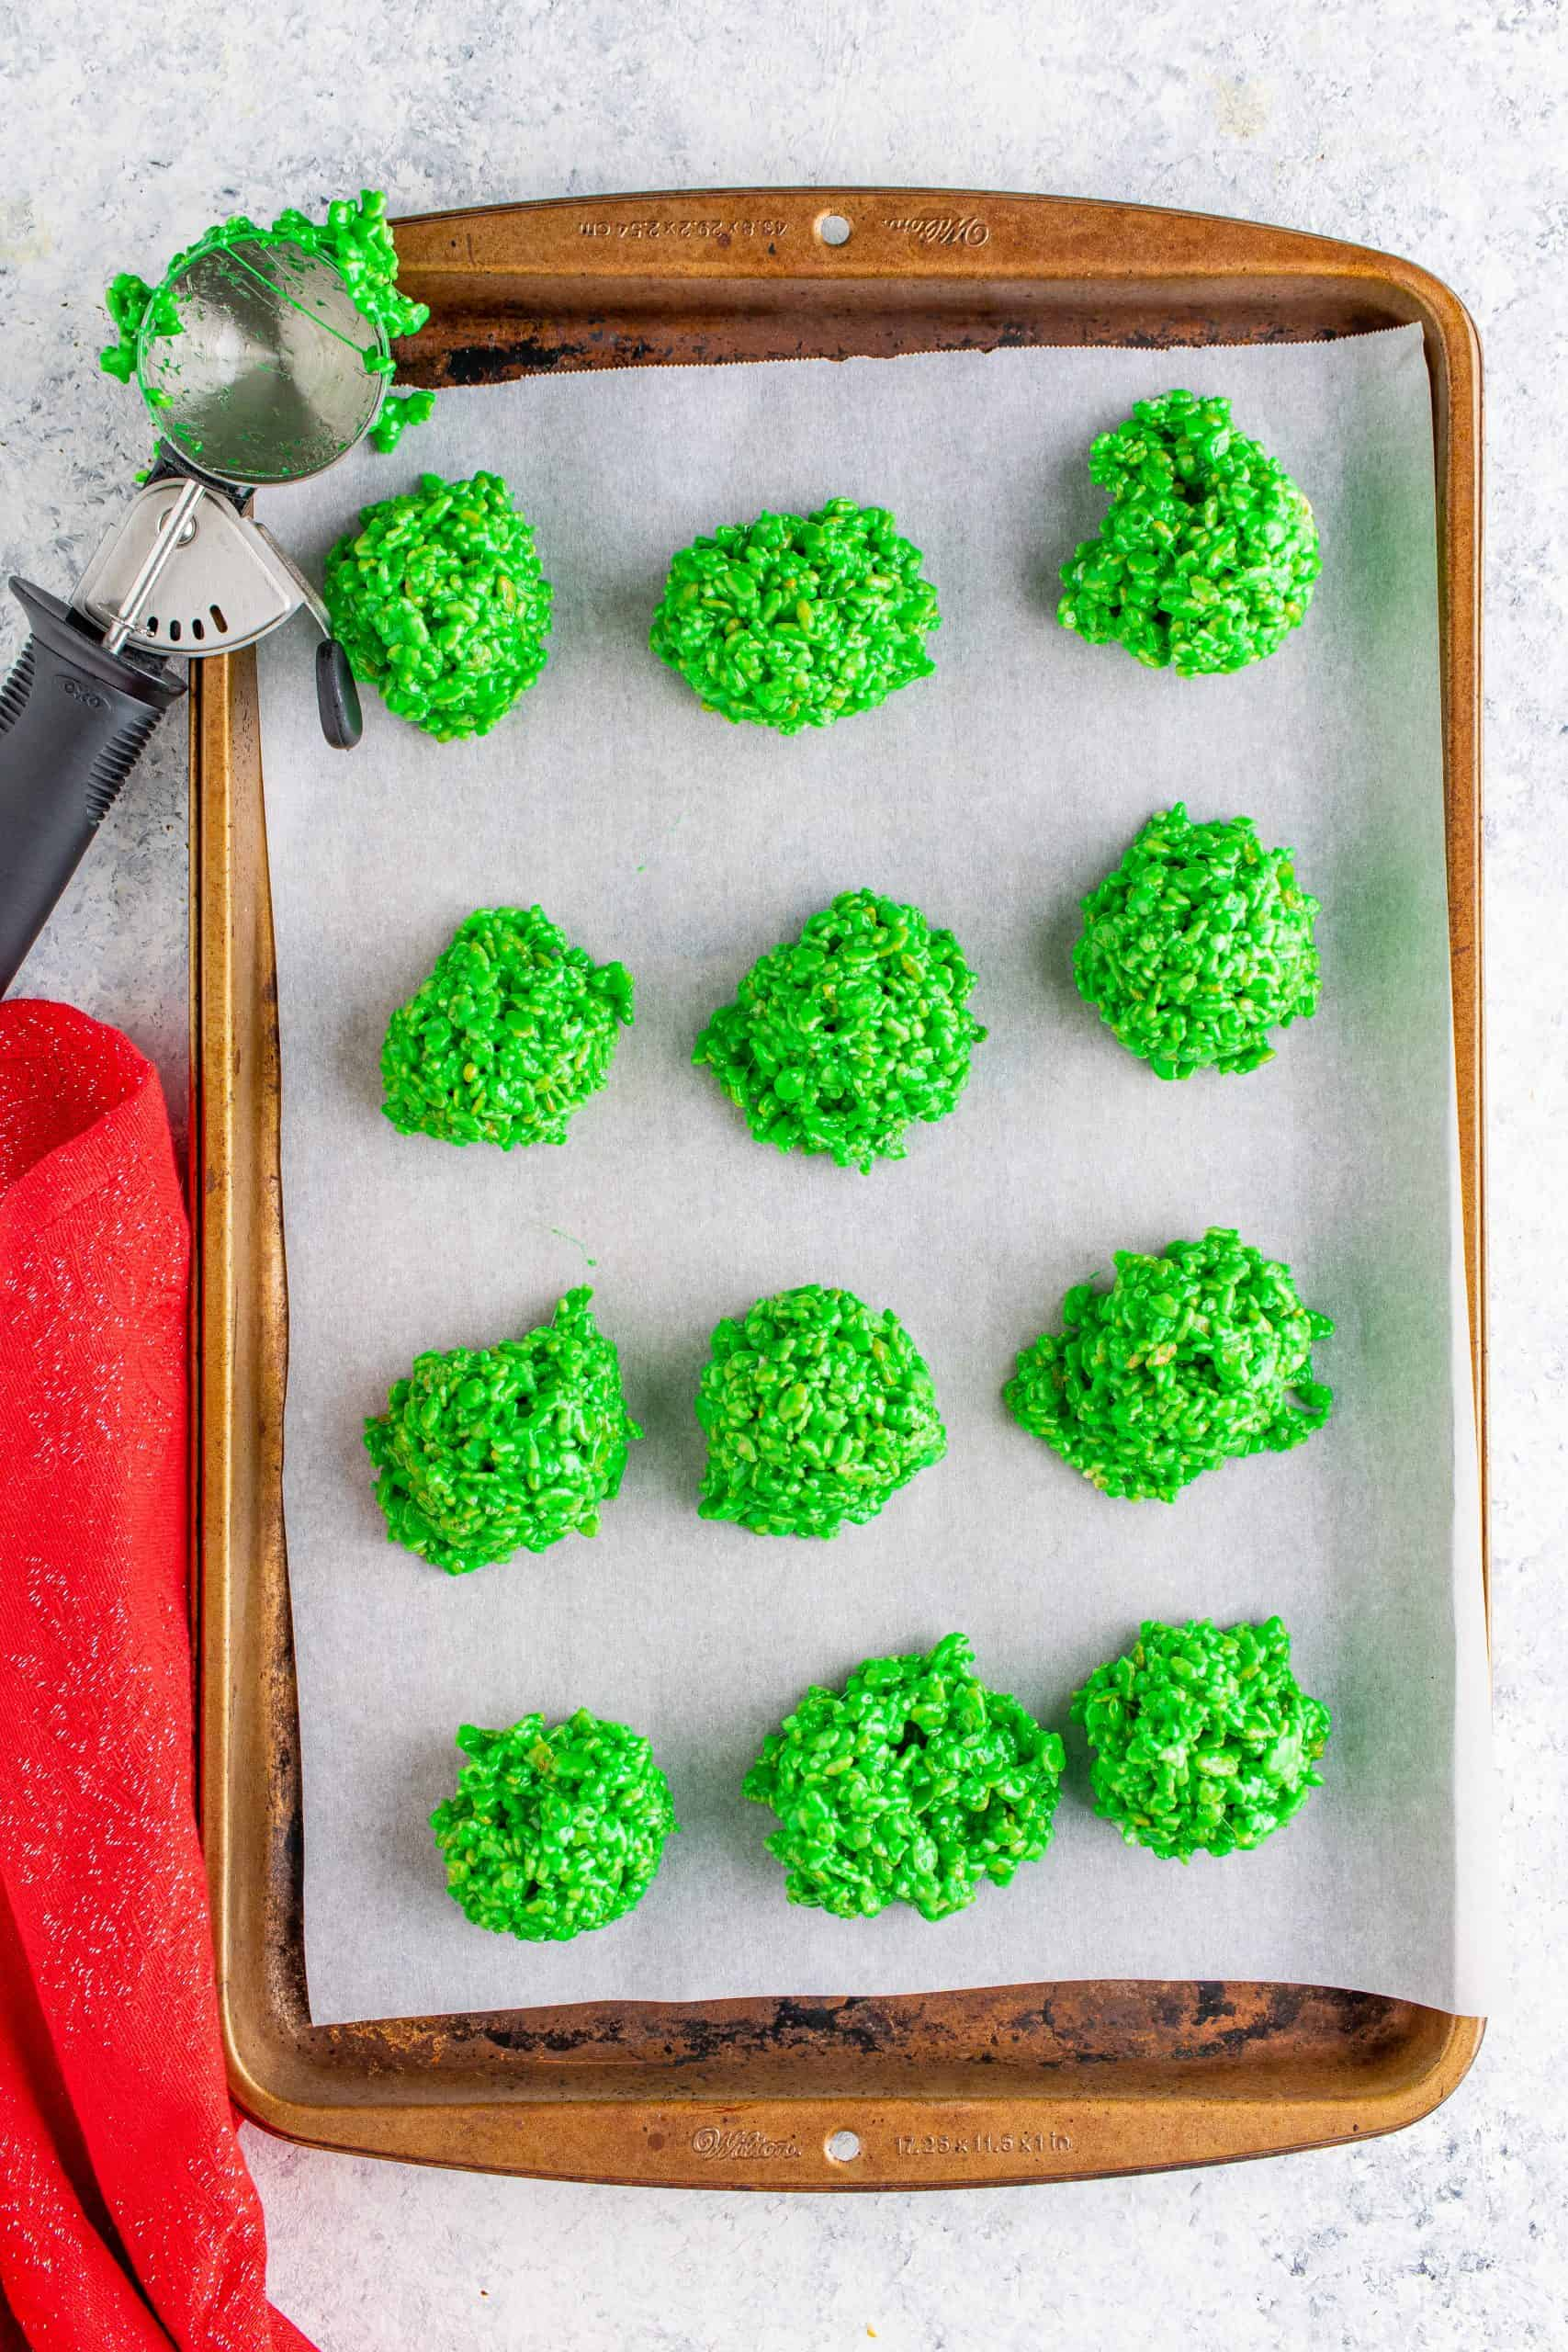 green balls of Rice Krispies cereal on a baking sheet lined with parchment paper.